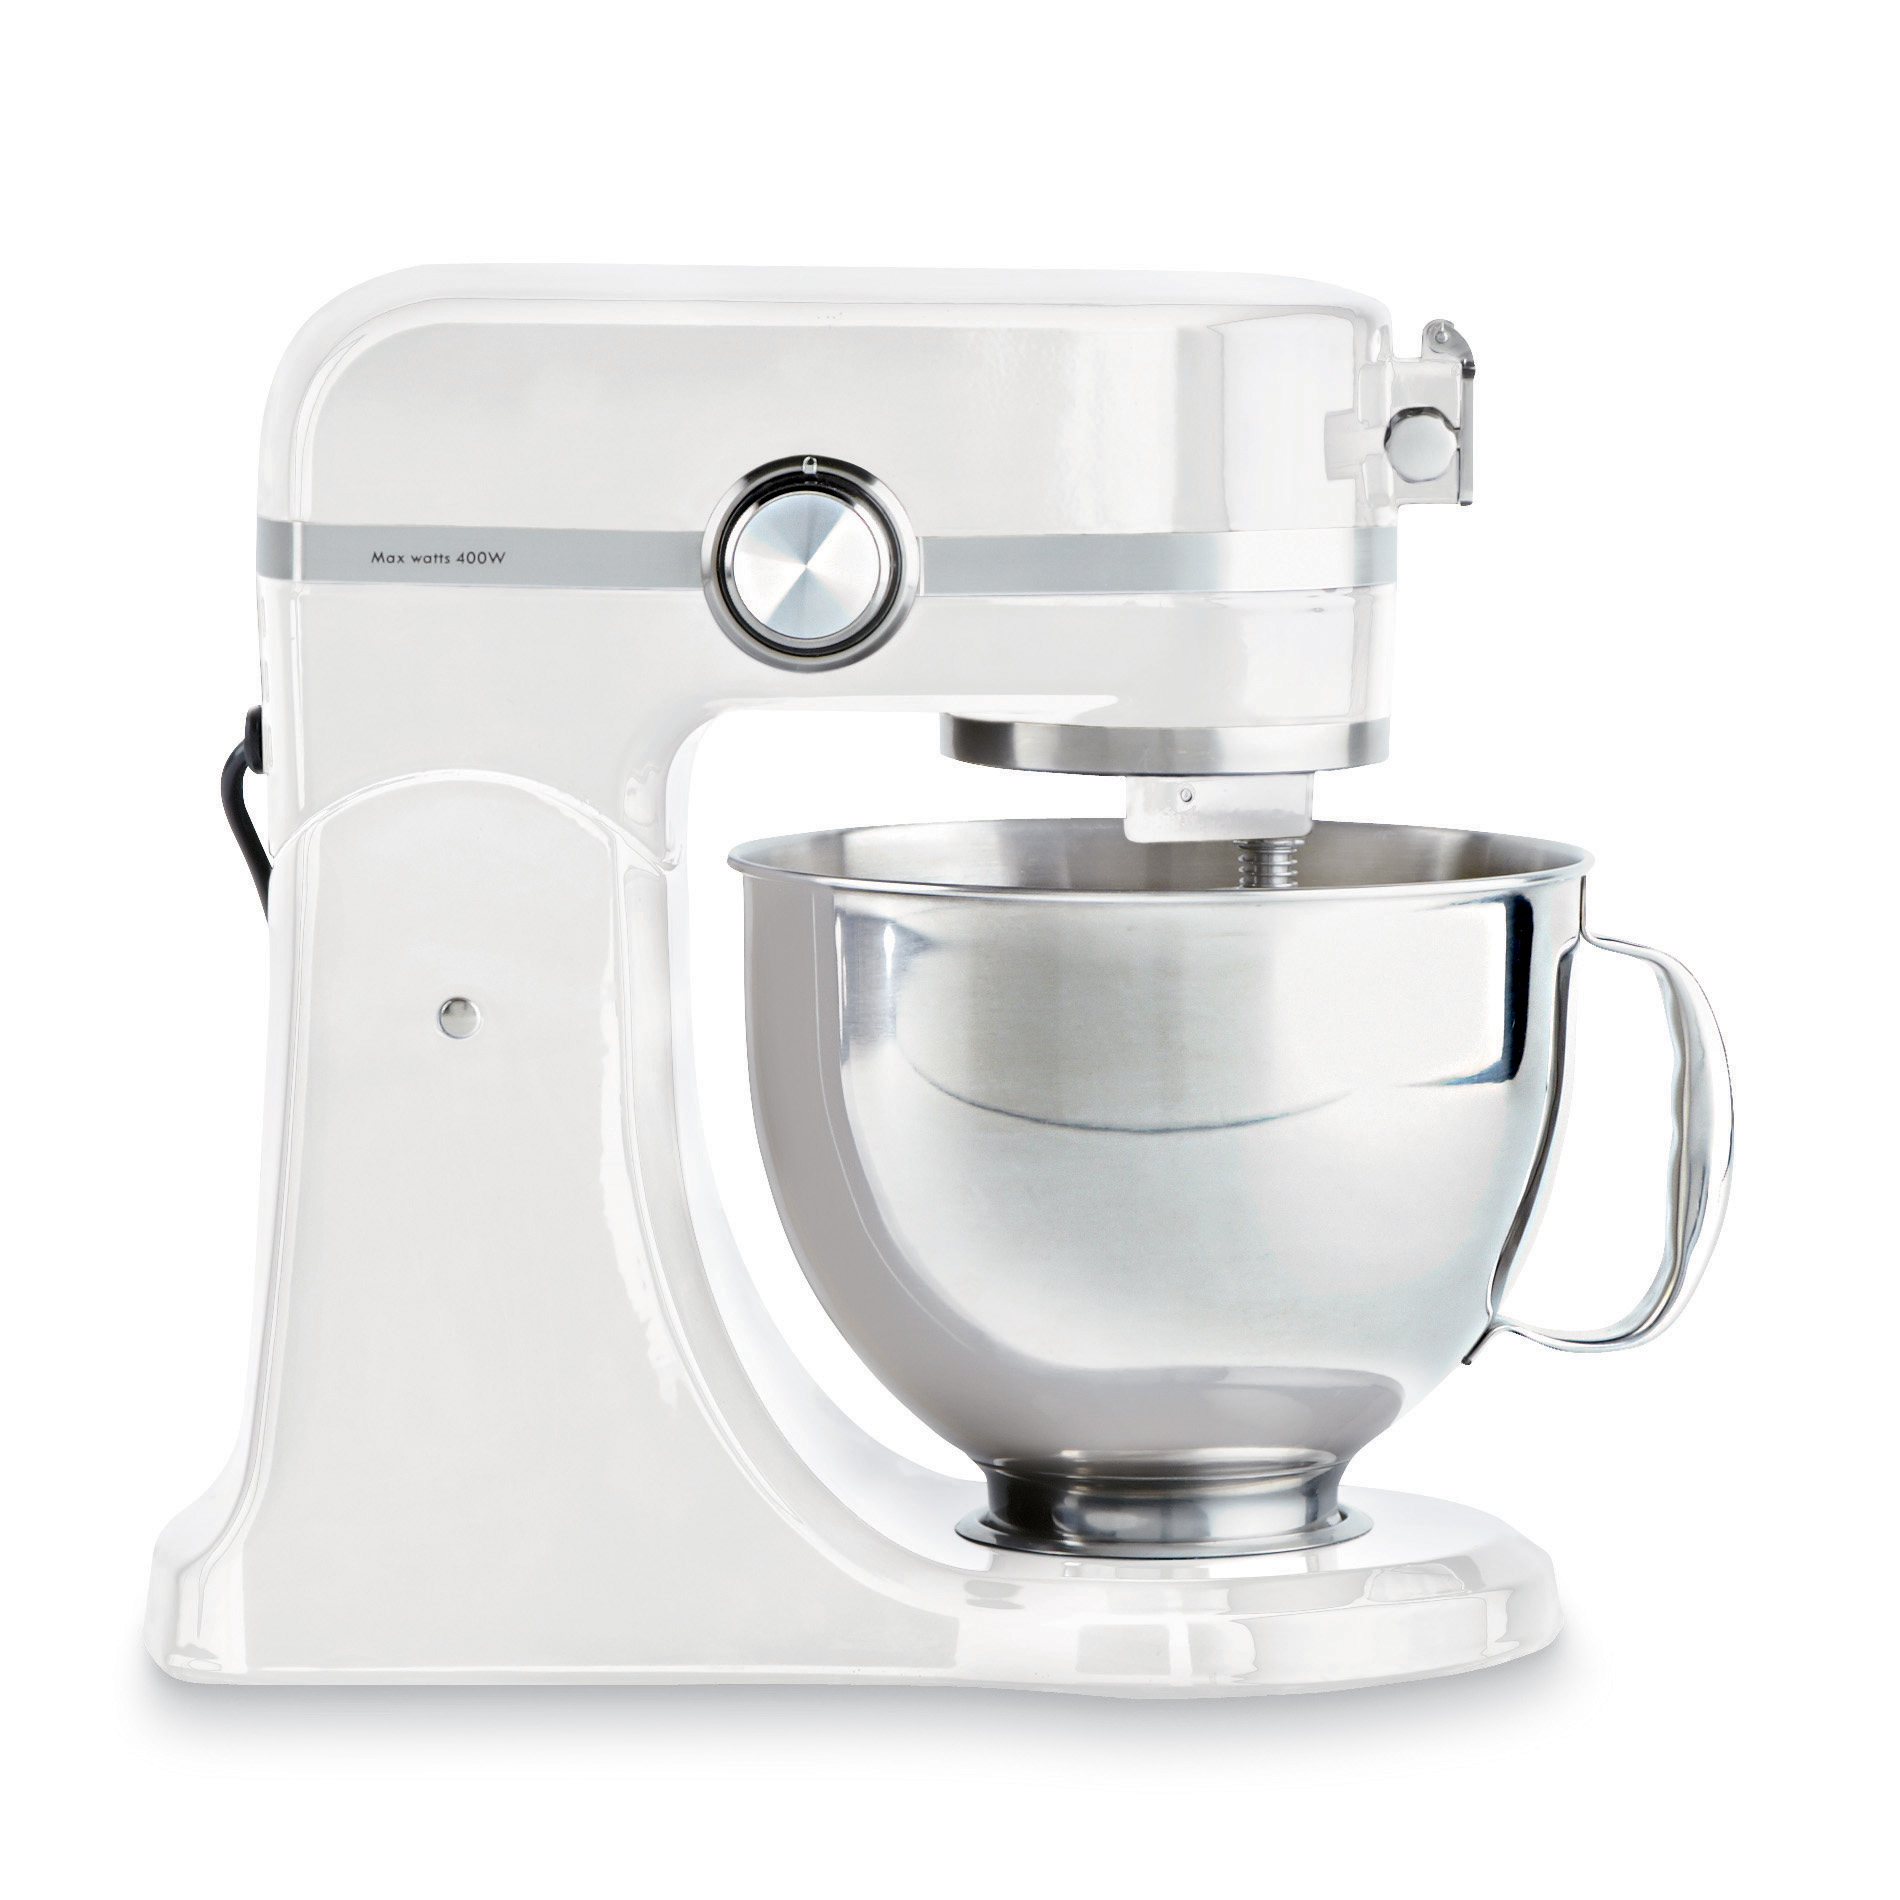 Kenmore Elite 5 Qt. 400 Watt White Stand Mixer with Extra 3 Qt. Bowl